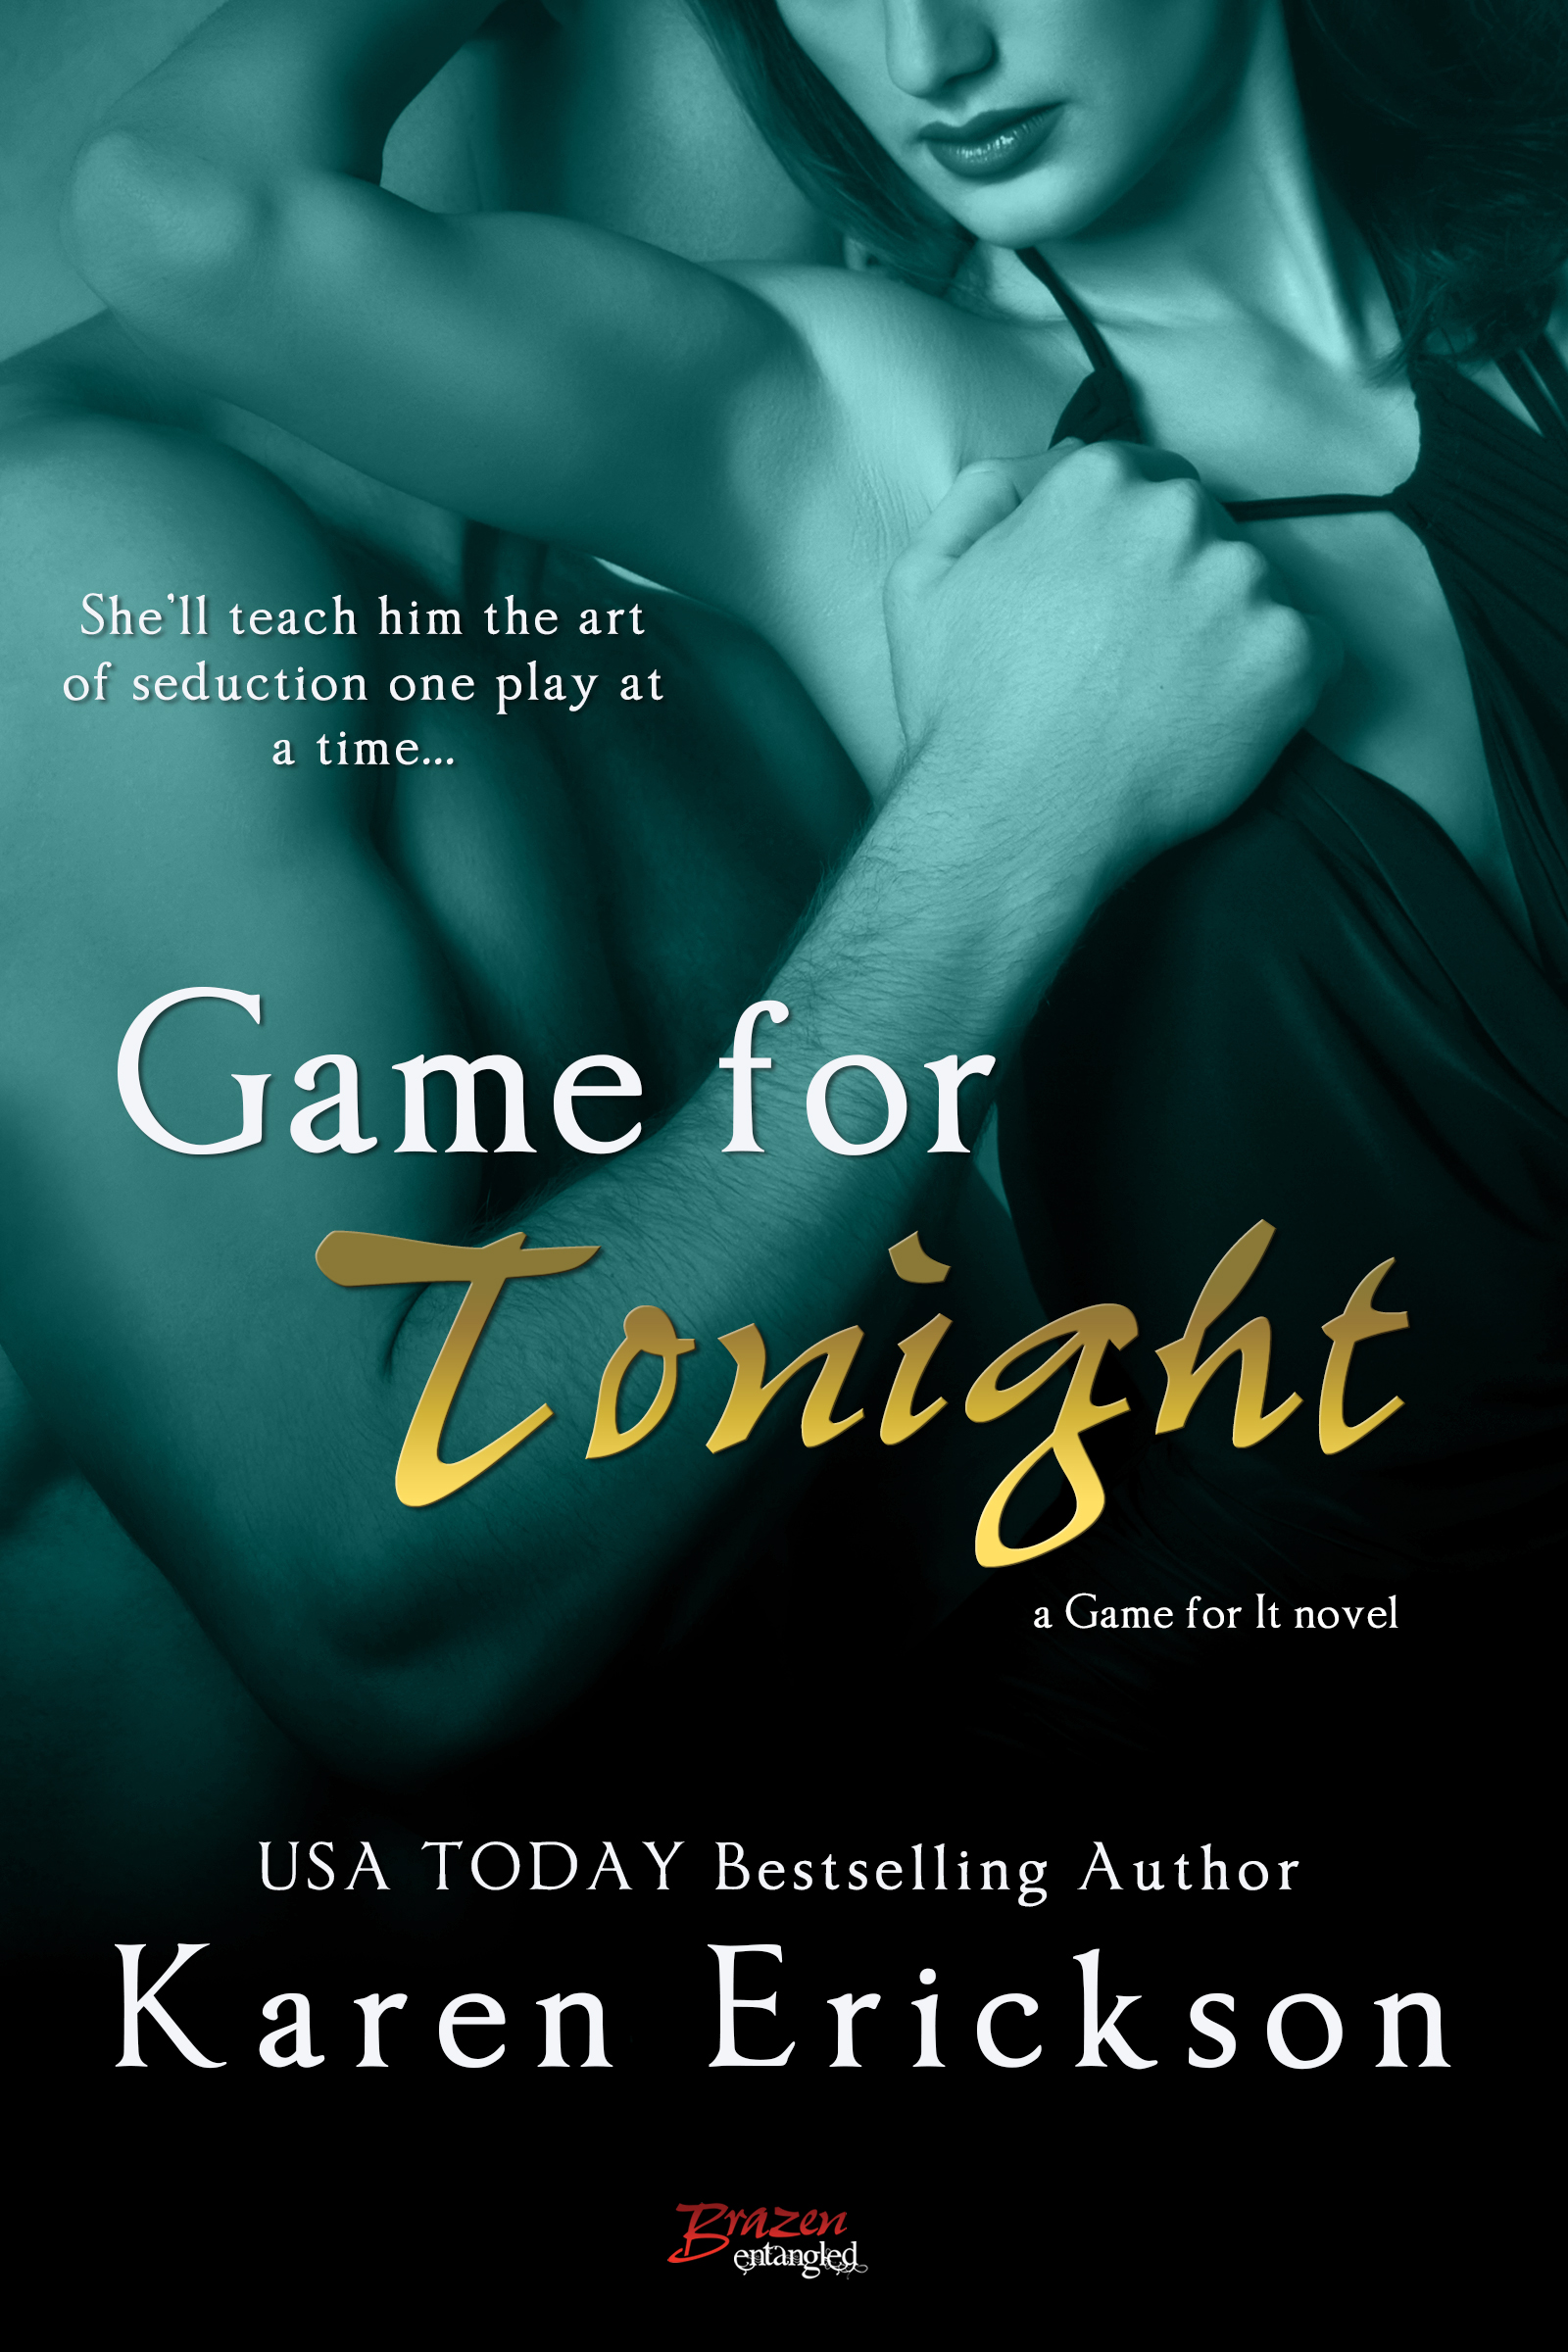 Game For Trouble - Game For It, Book 3Amazon • B&N • iBooks • Kobo • BAM • GooglePlayShe'll teach him the art of seduction one play at a time...Publicist Aubrey Cooper never should have crossed the line. After all, pro football player Flynn Foley is her client. But something about this mouth-wateringly-hot, clean-cut athlete makes Aubrey imagine all kinds of X-rated fantasies. And it only takes one game-changing play―and one night―to turn the tables from strictly business to very, very personal…Flynn has maintained a no-sexy-distractions policy for his entire pro career. Aubrey is exactly the kind of distraction he was trying to avoid, and she's the one he can't resist. When the media catches wind of their naughty little liaison, however, Aubrey's boss steps in to make them an official couple. What Flynn doesn't know is that Aubrey is forced to fake the relationship―or lose her job.Now Aubrey must hide the truth…even as she begins to fall for Flynn.Amazon • B&N • iBooks • Kobo • BAM • GooglePlay